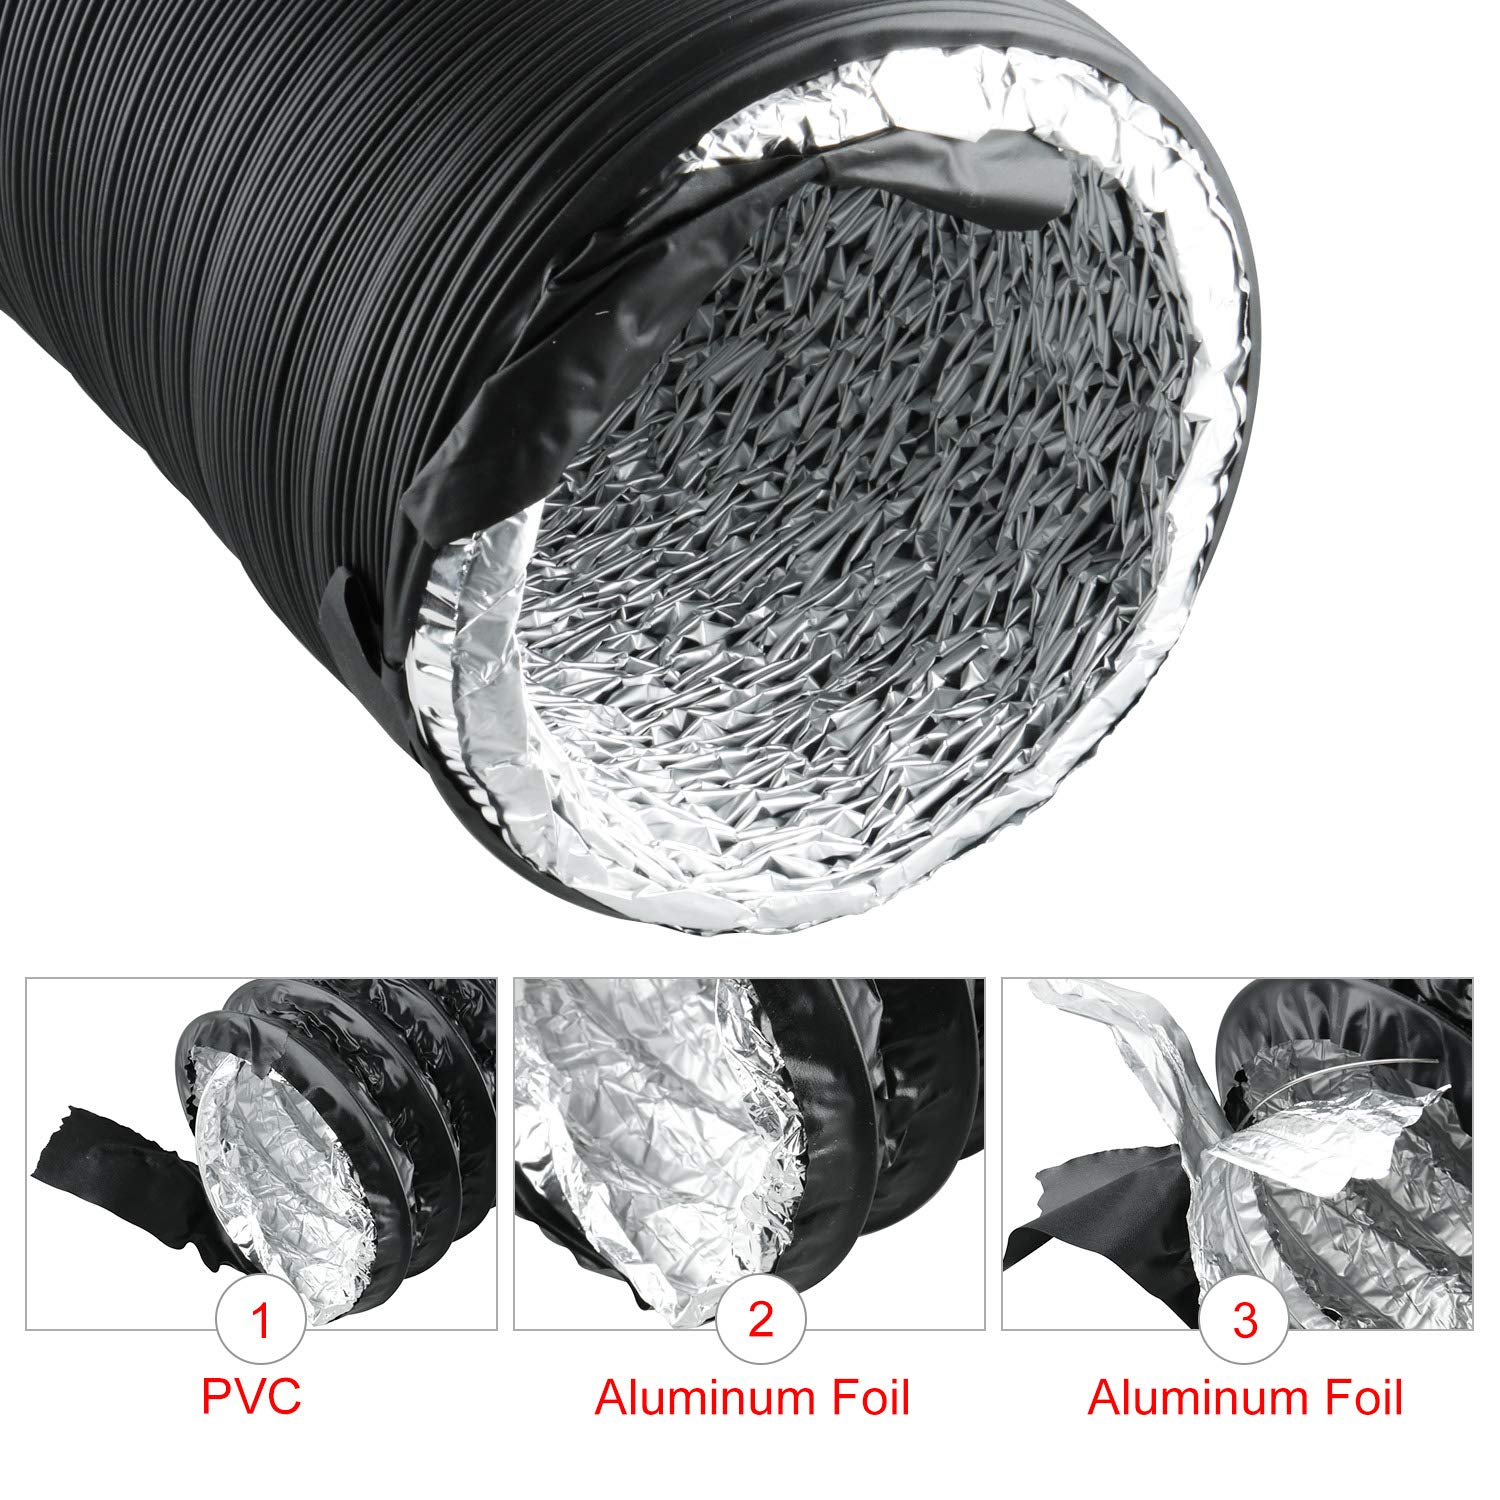 4 X 32 FT, Black Dryer Rooms,Kitchen Black Flexible Ducting HVAC Ventilation Air Hose for Grow Tents Homend Air Duct